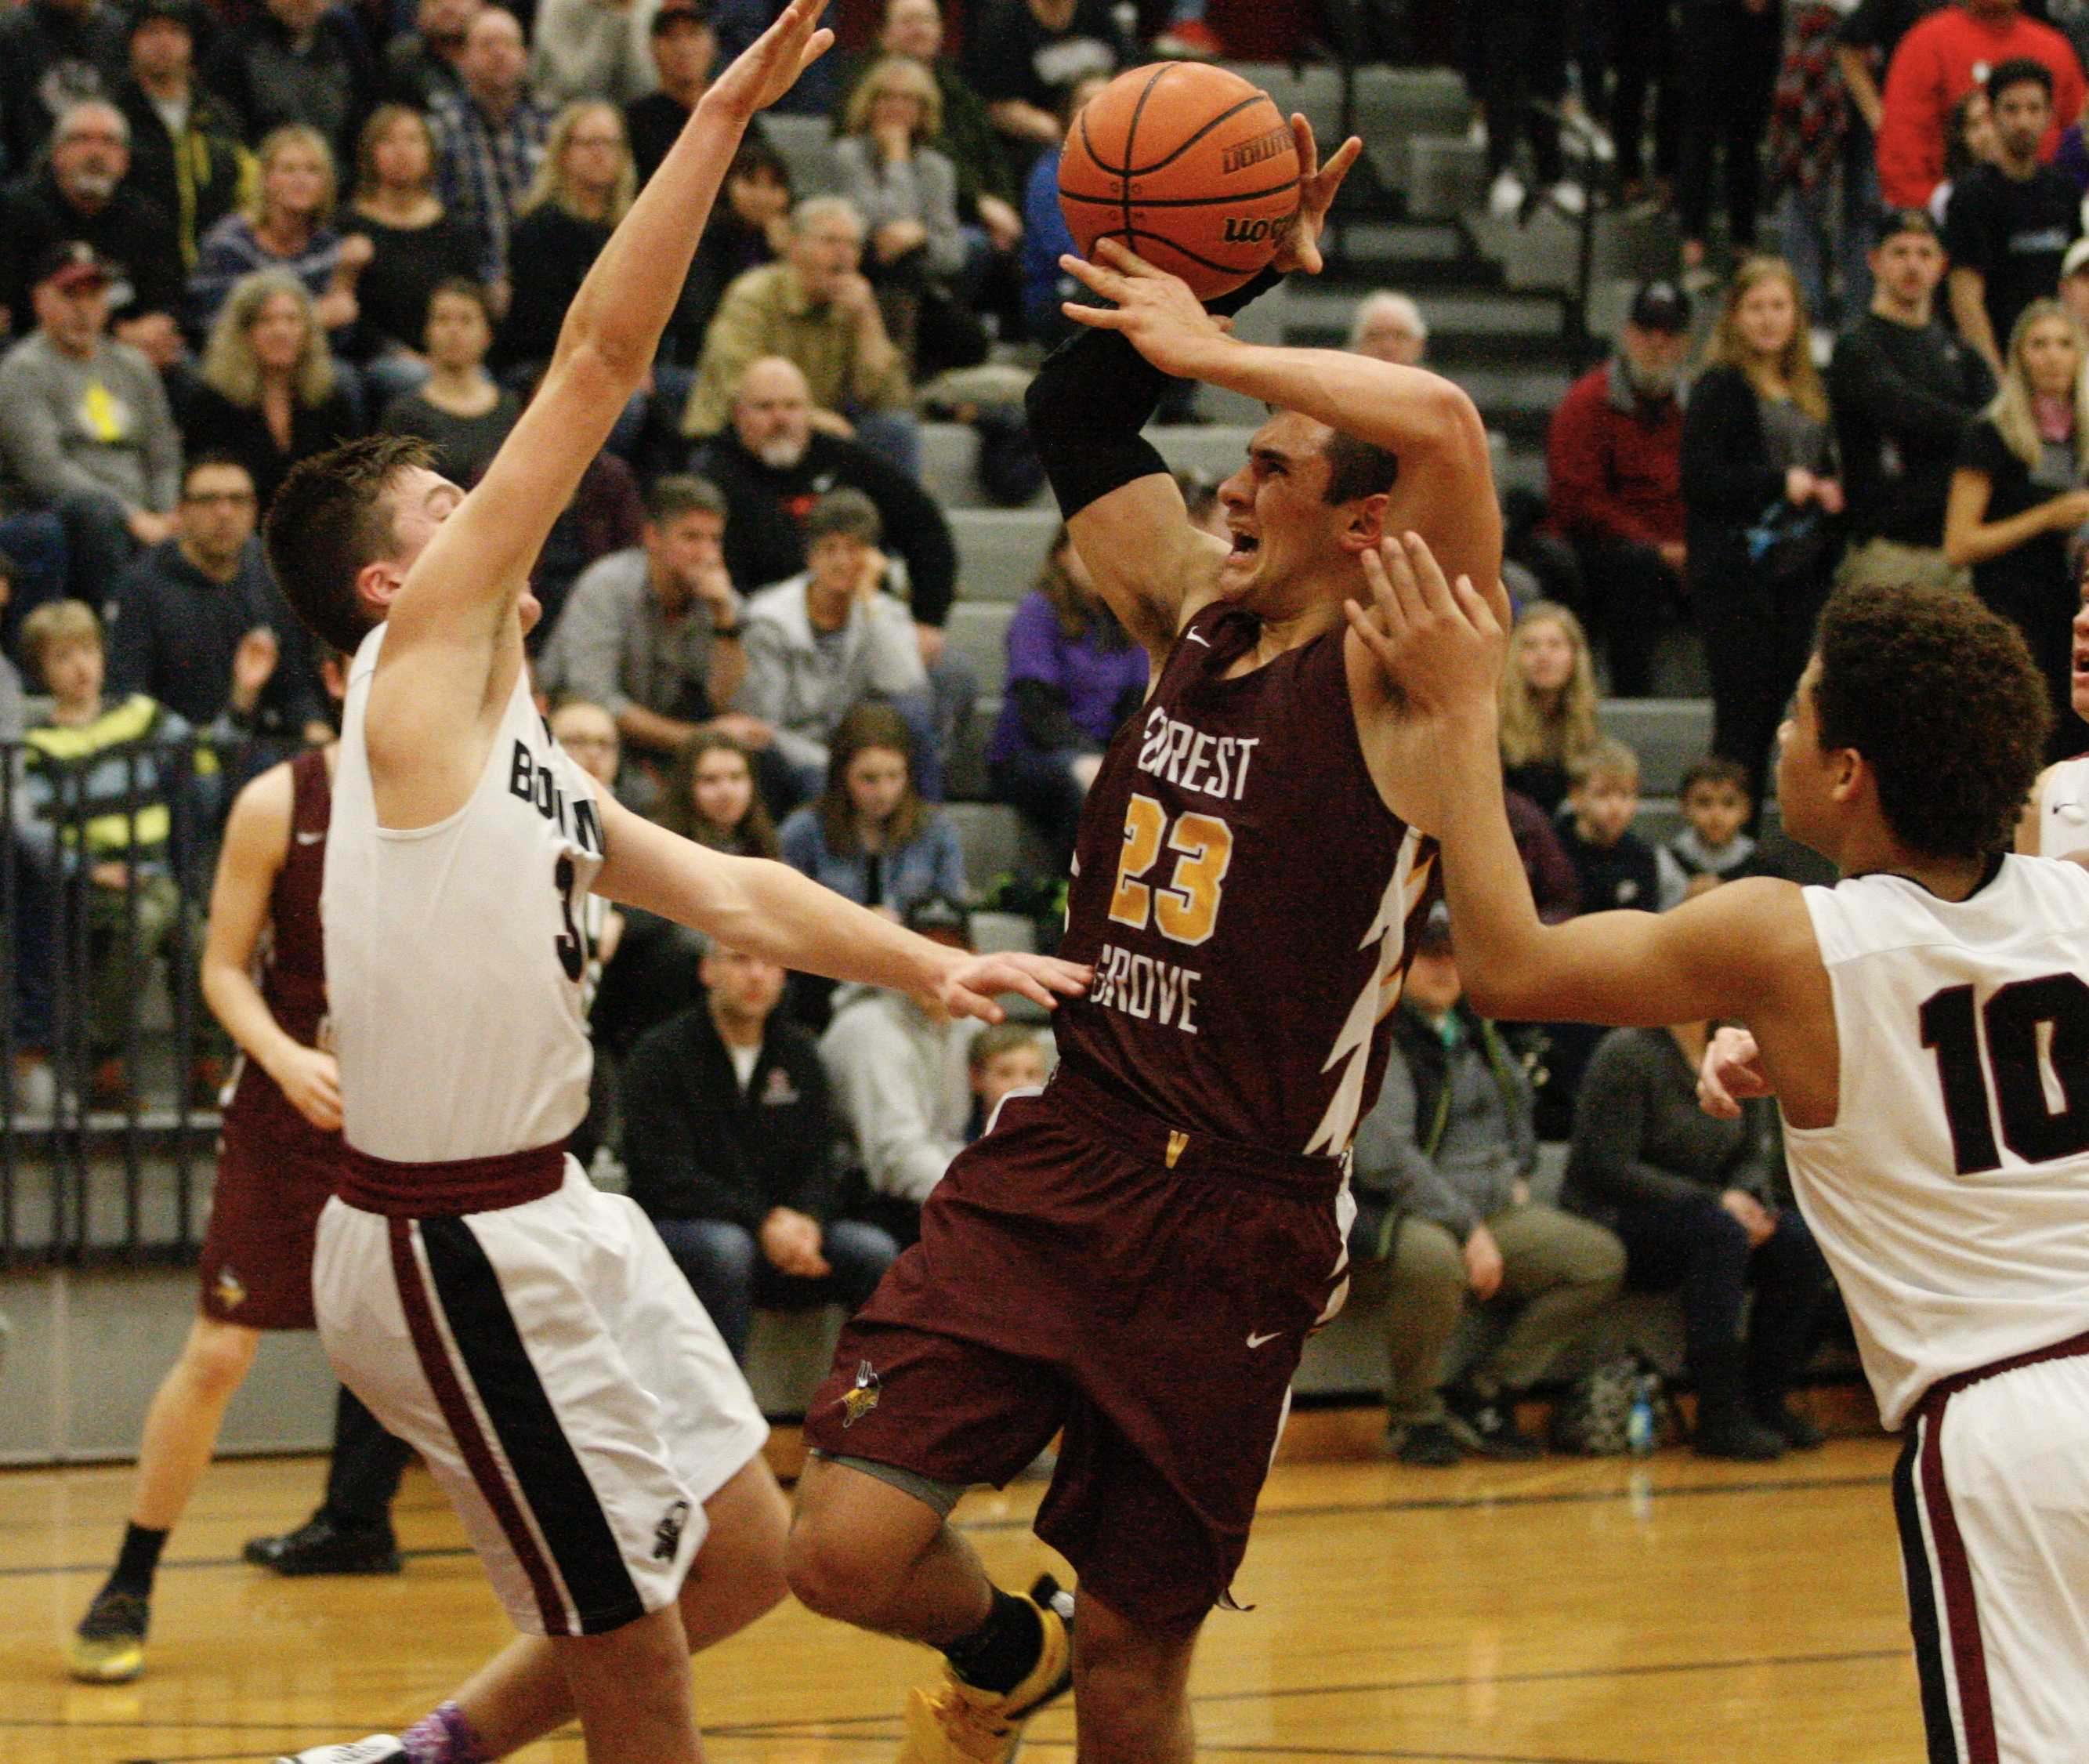 Sherwood defenders Tyler His (3) and Jamison Guerra reject a drive by Forest Grove's Guy Littlefield in decisive third quarter.